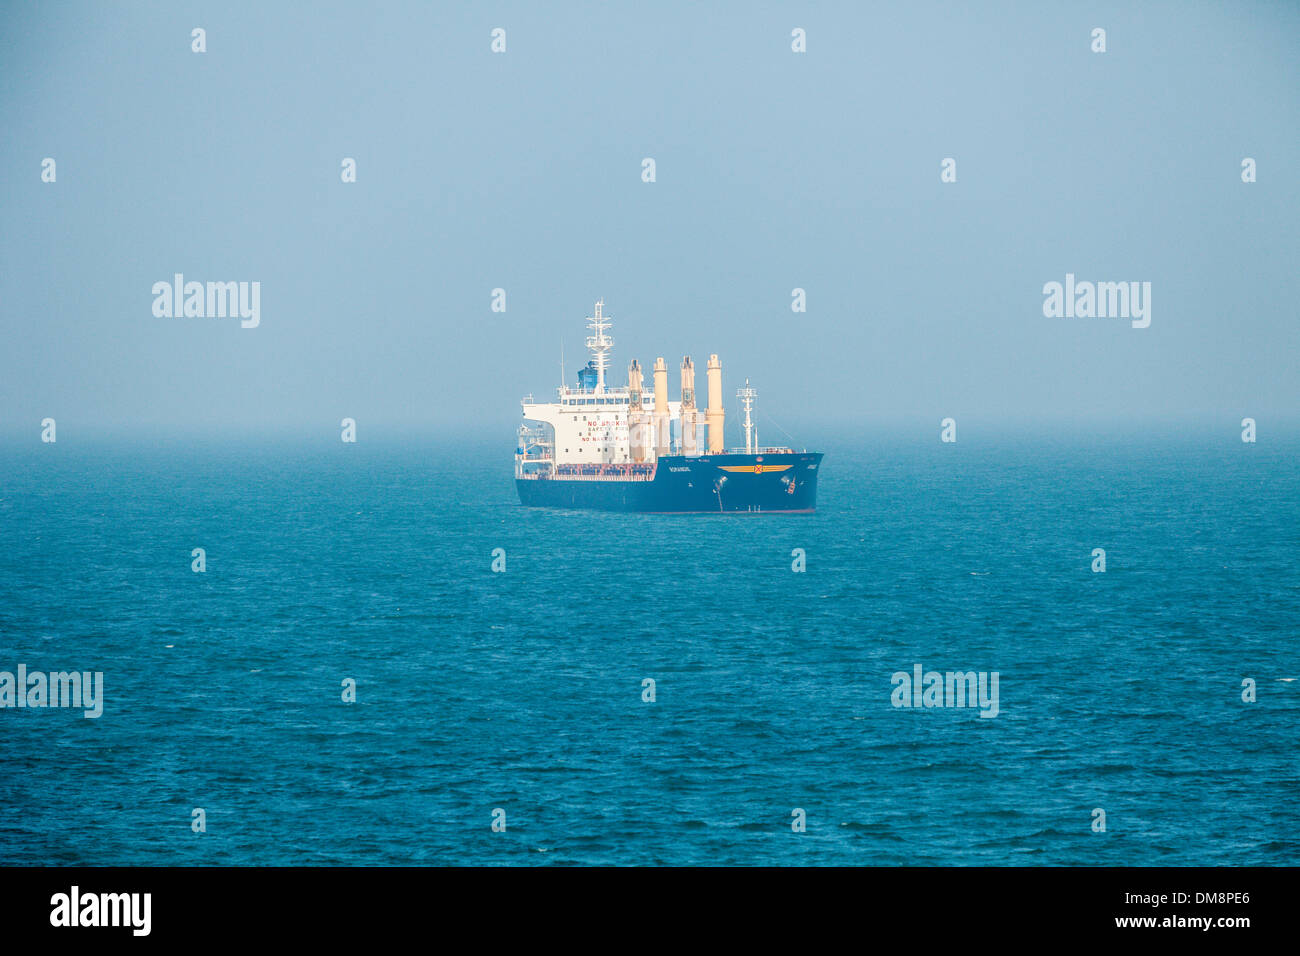 Freighters and other shipping in the straits of Dover, England - Stock Image